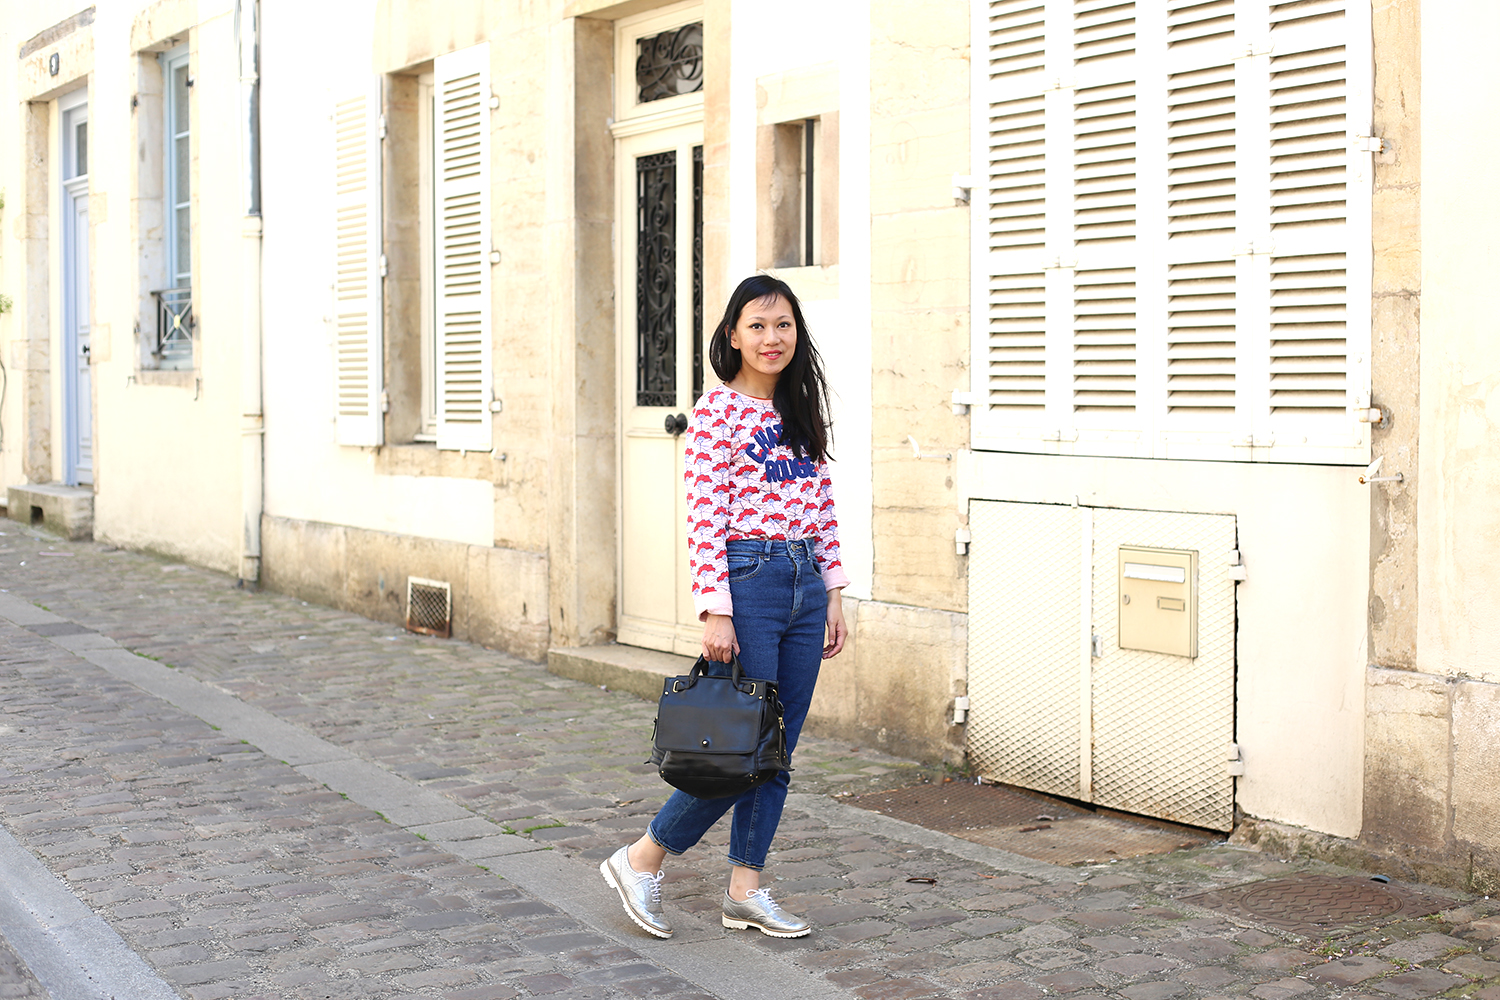 petite and so what - sweat chateau rouge x monoprix collaboration 4